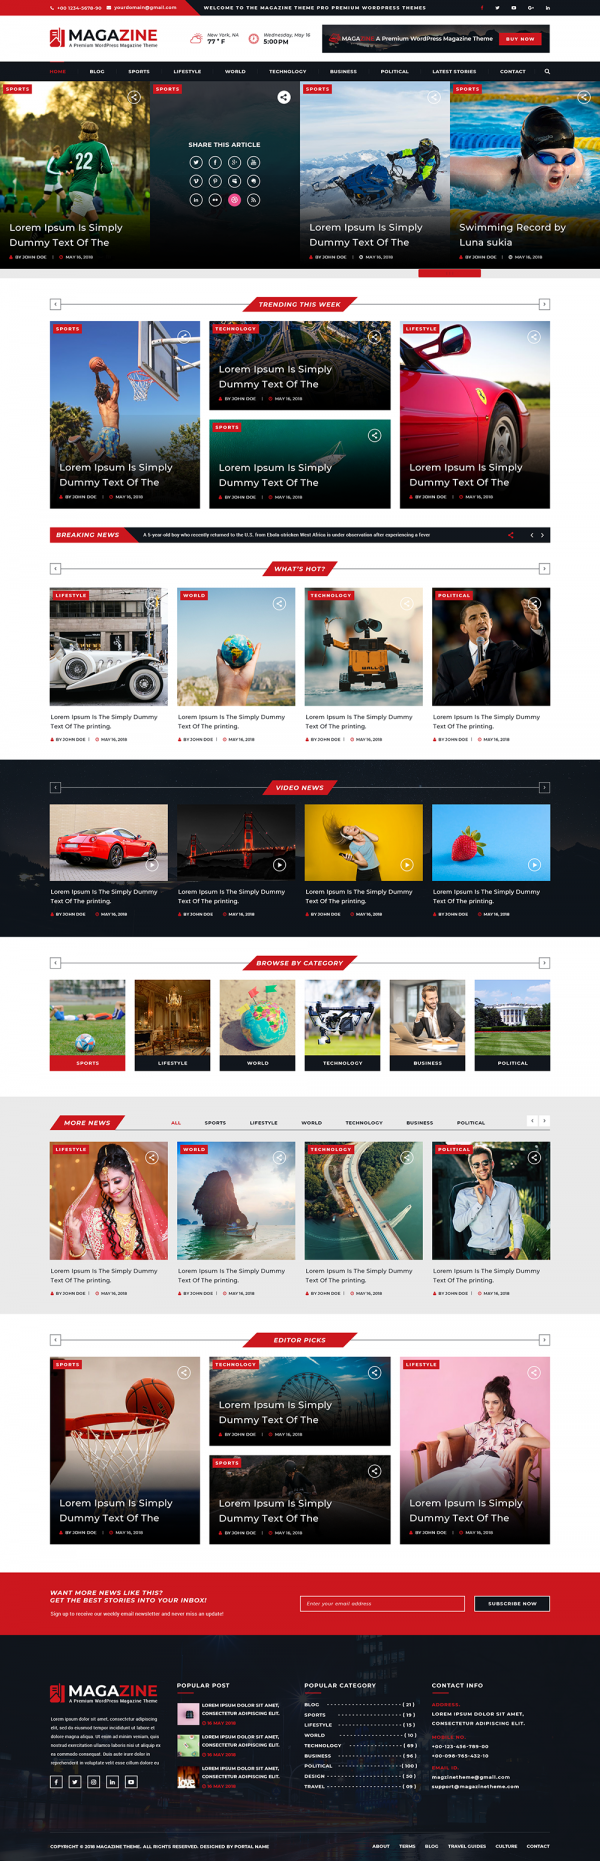 Magazine WordPress Template